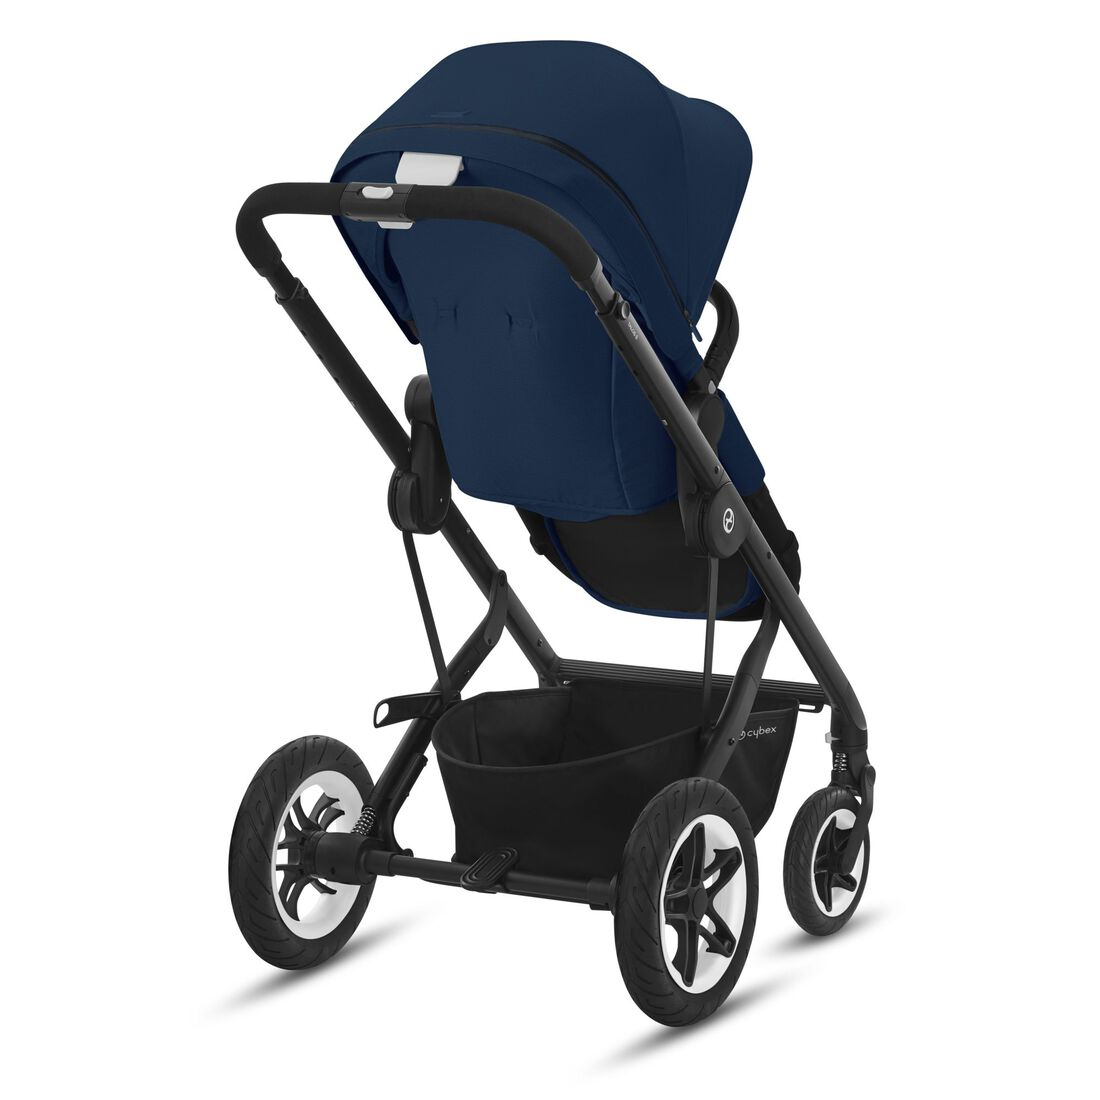 CYBEX Talos S 2-in-1 - Navy Blue in Navy Blue large Bild 6